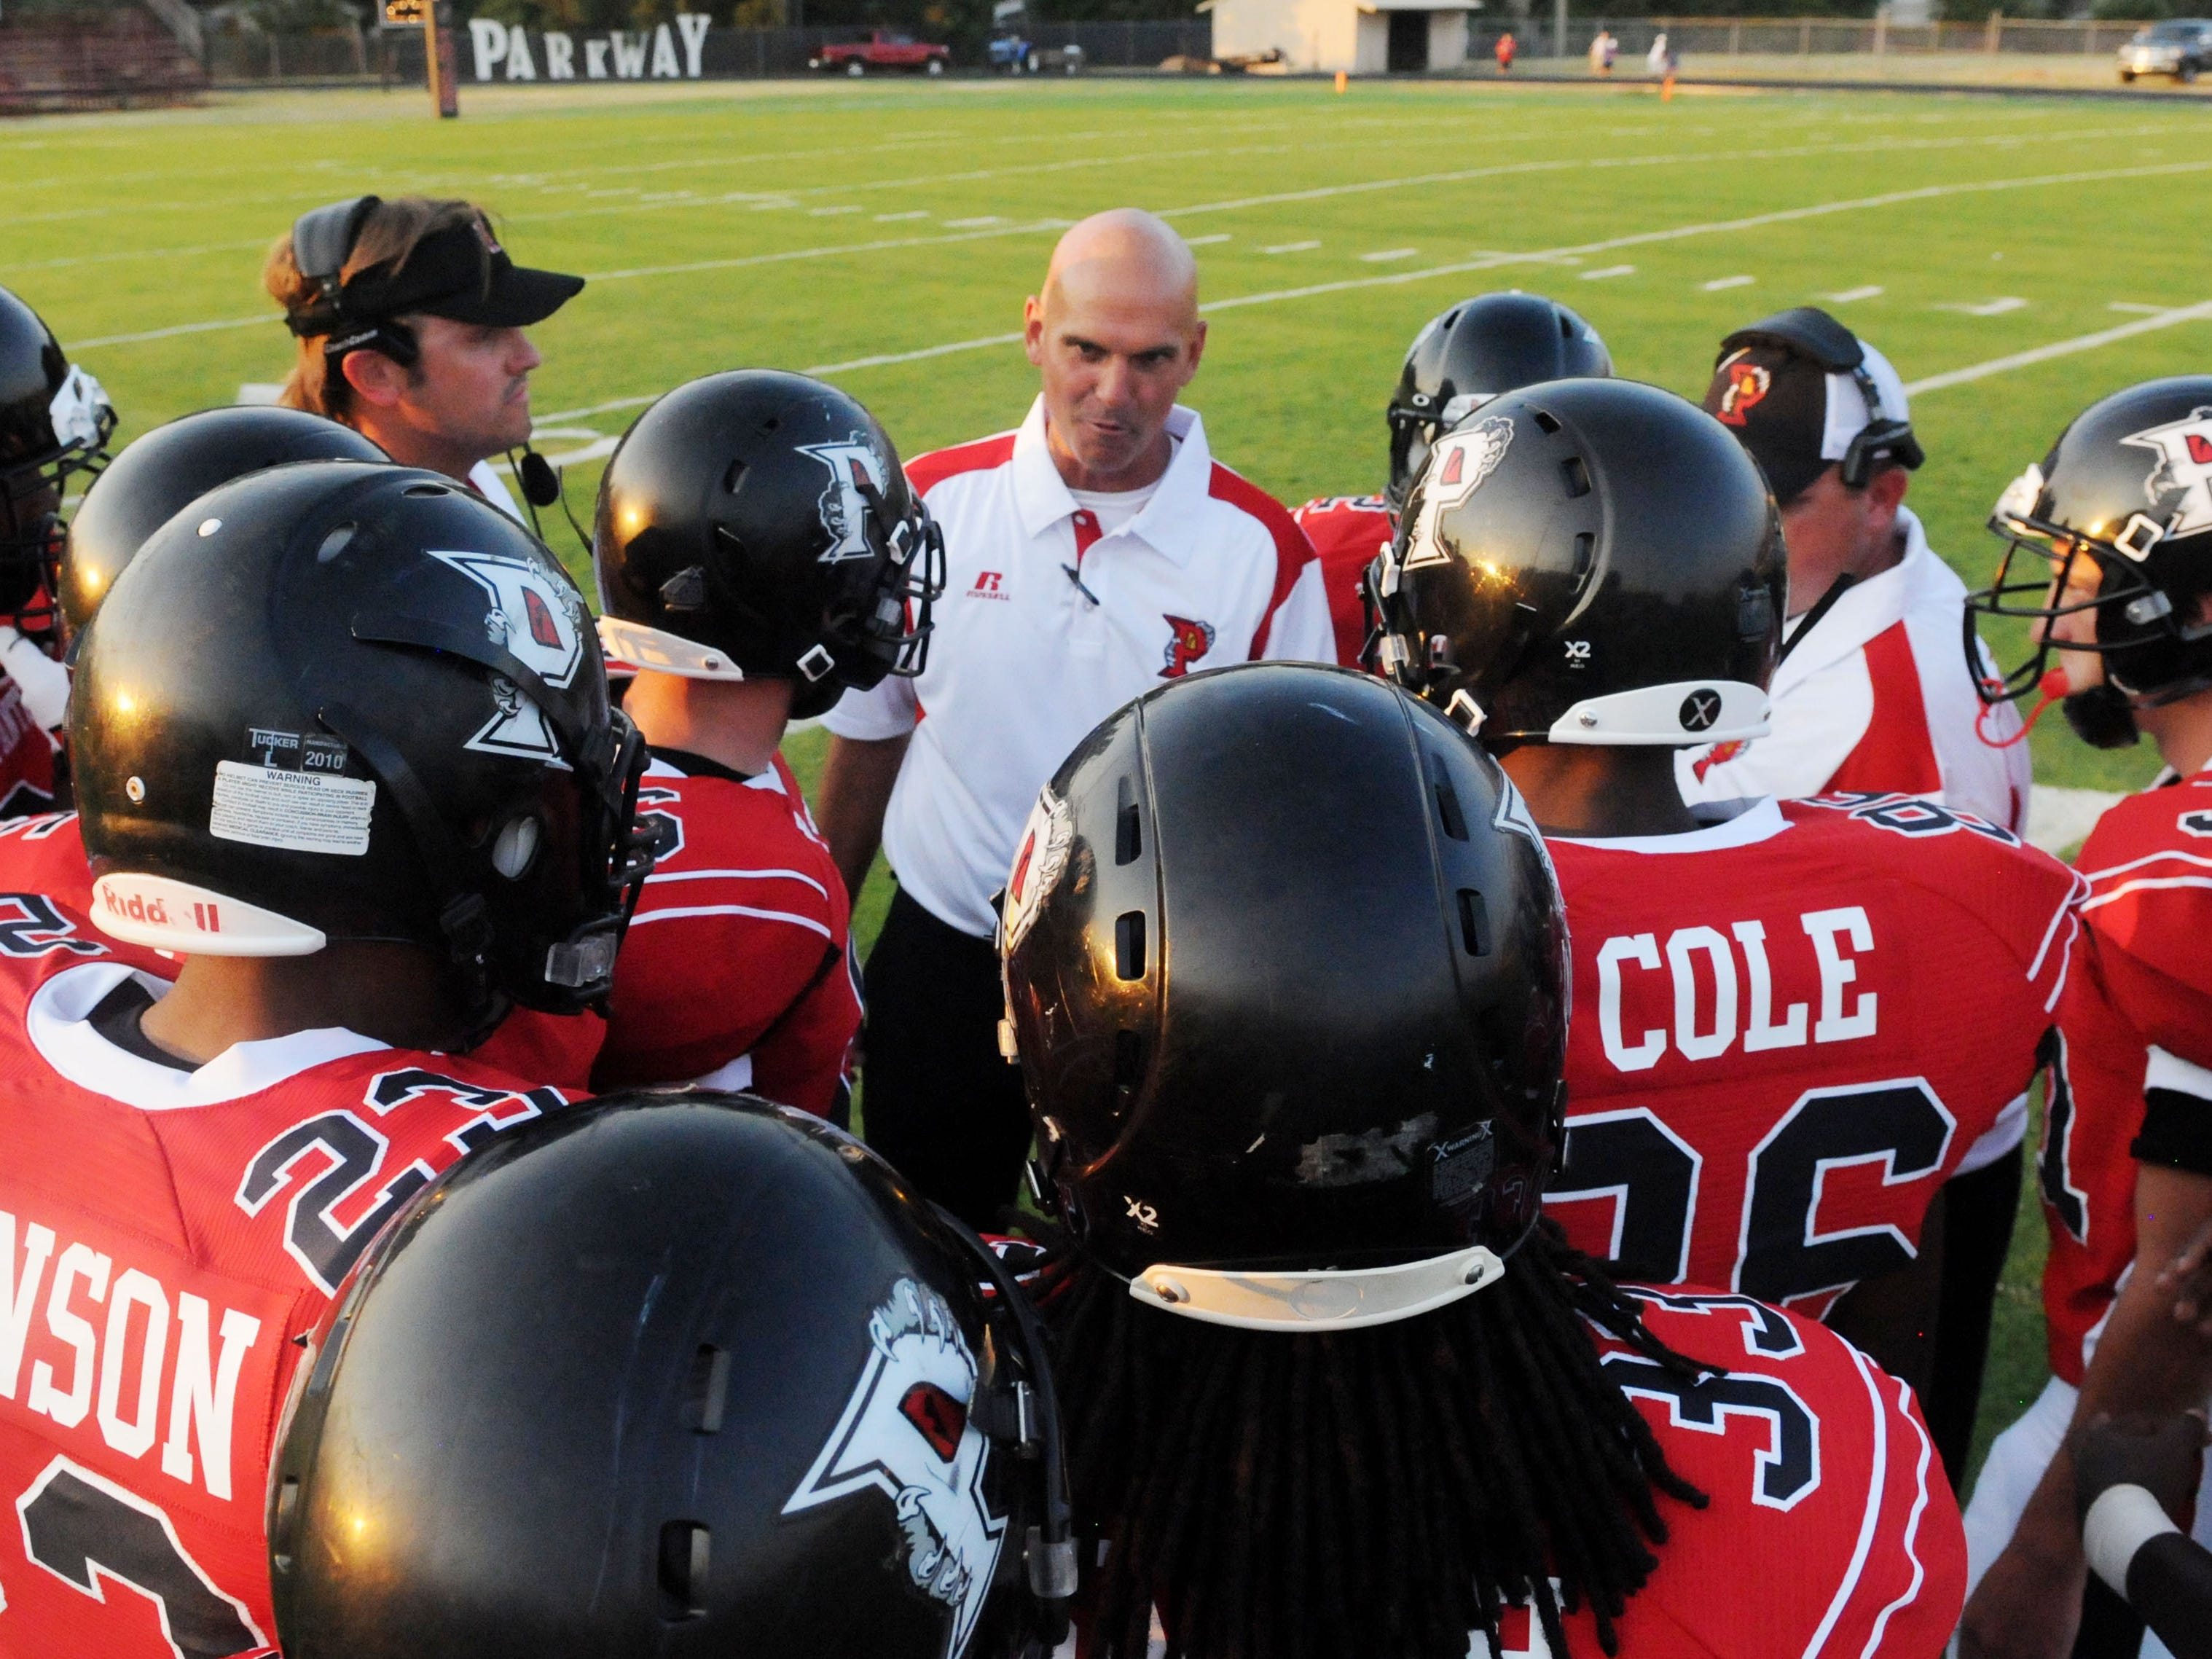 Former Parkway head football coach David Feaster was released after six seasons.